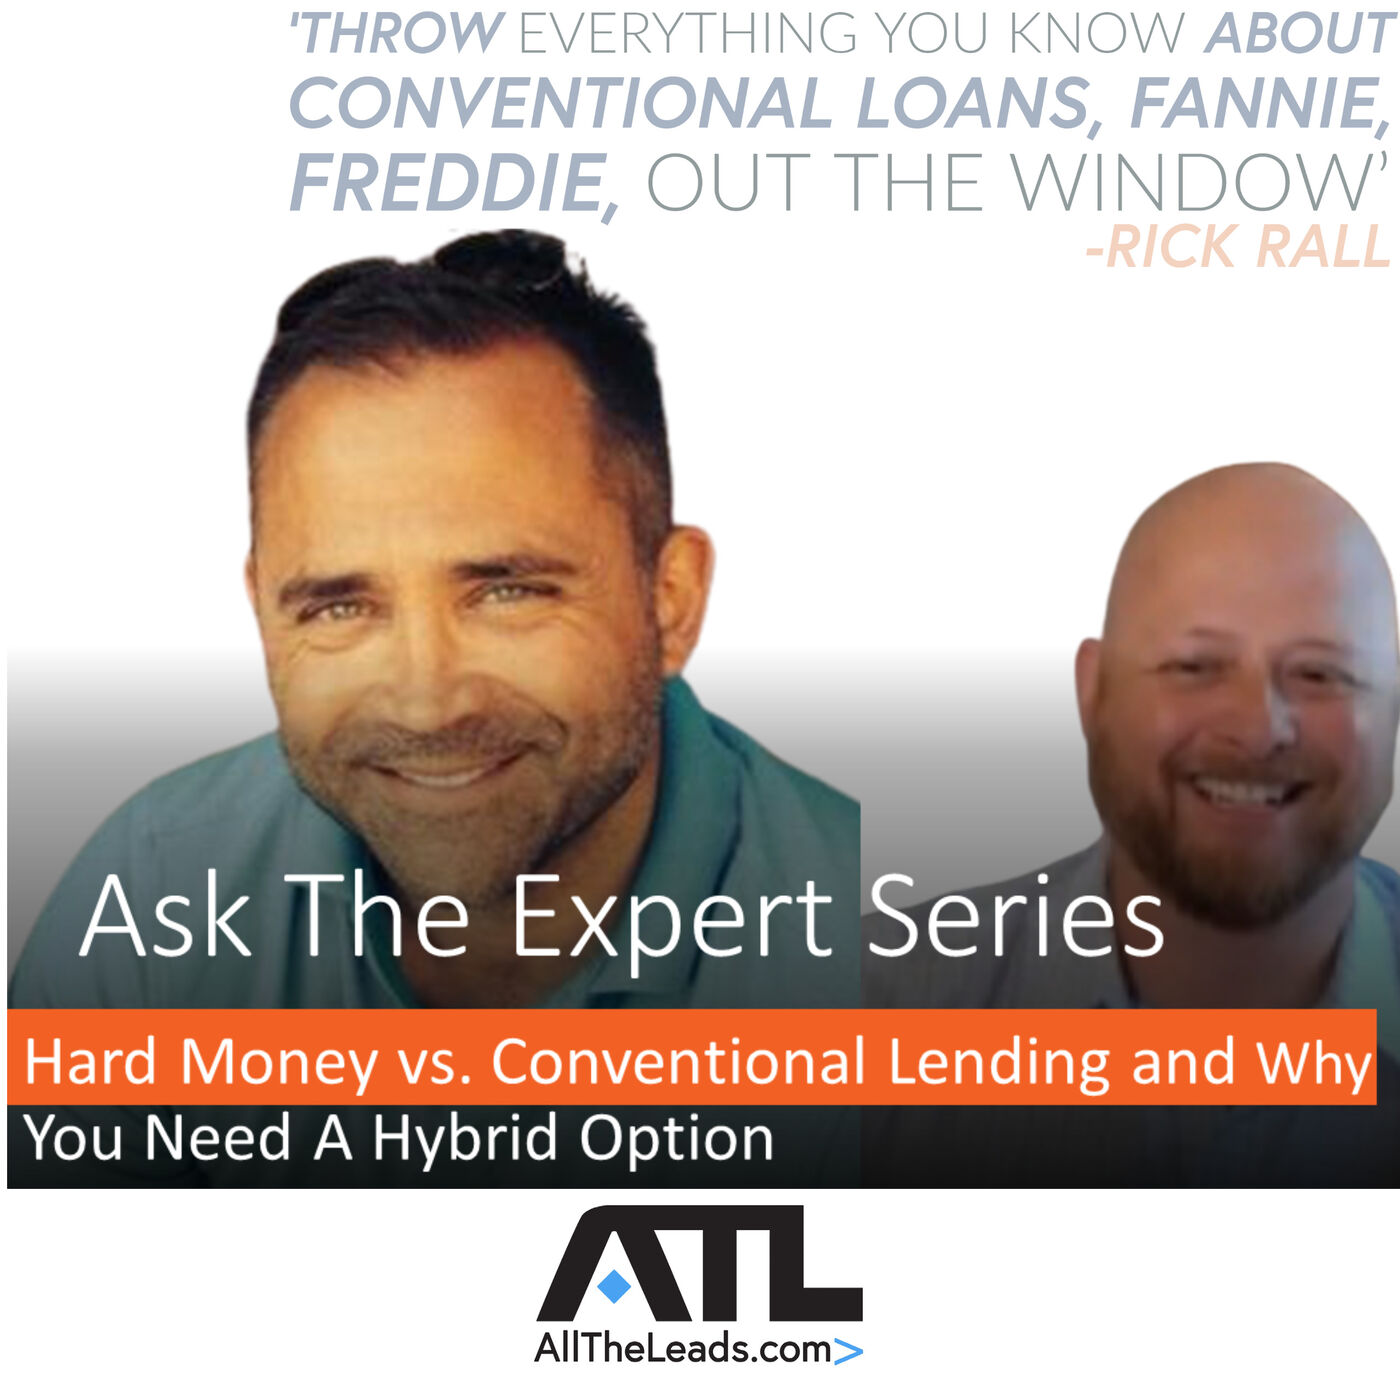 Ask The Expert: Funding Real Estate Investments Without Hard Money or Conventional Lending